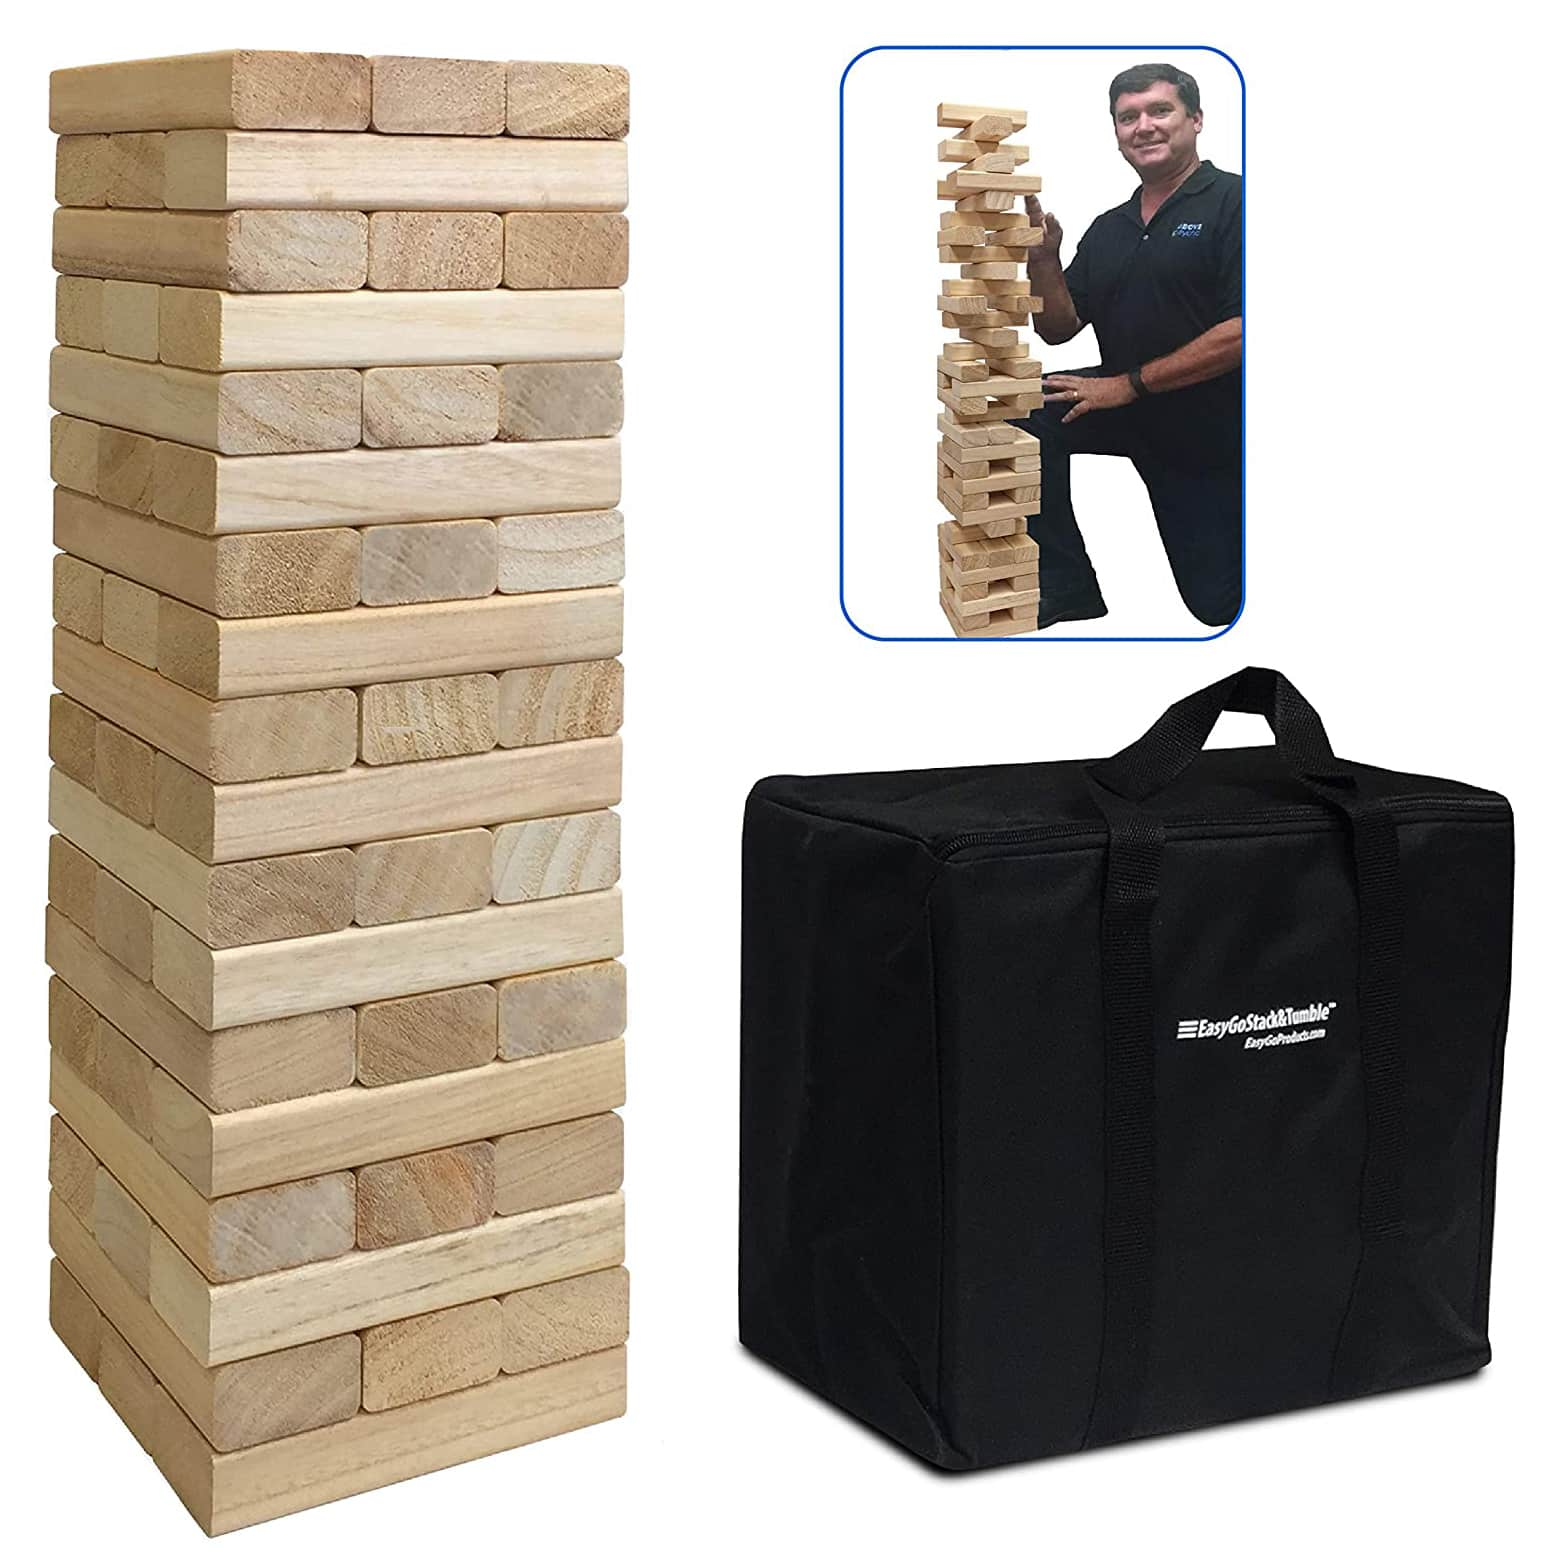 EasyGoProducts Tumble Tower Game